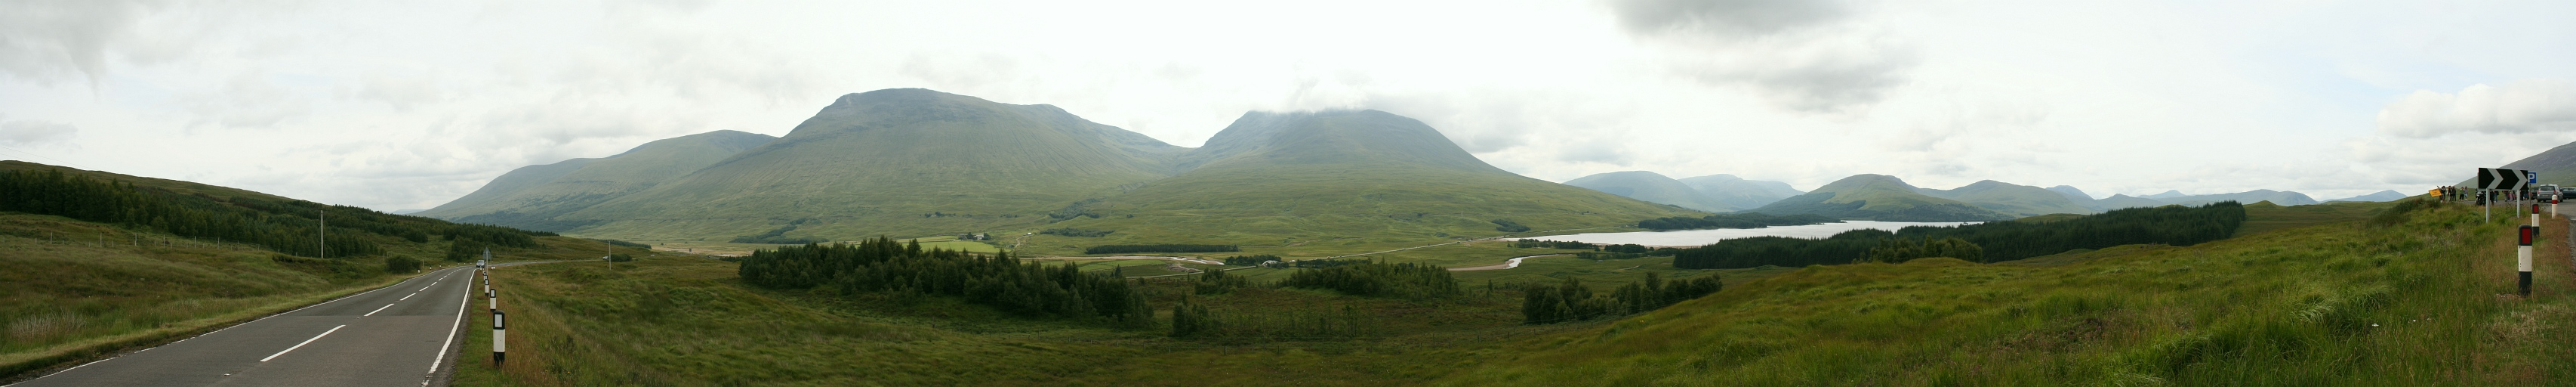 A view of Beinn Achaladair (3,406 ft), Beinn an Dothaidh (3,294 ft) and Loch Tulla from the A82 road (8.08.2010)